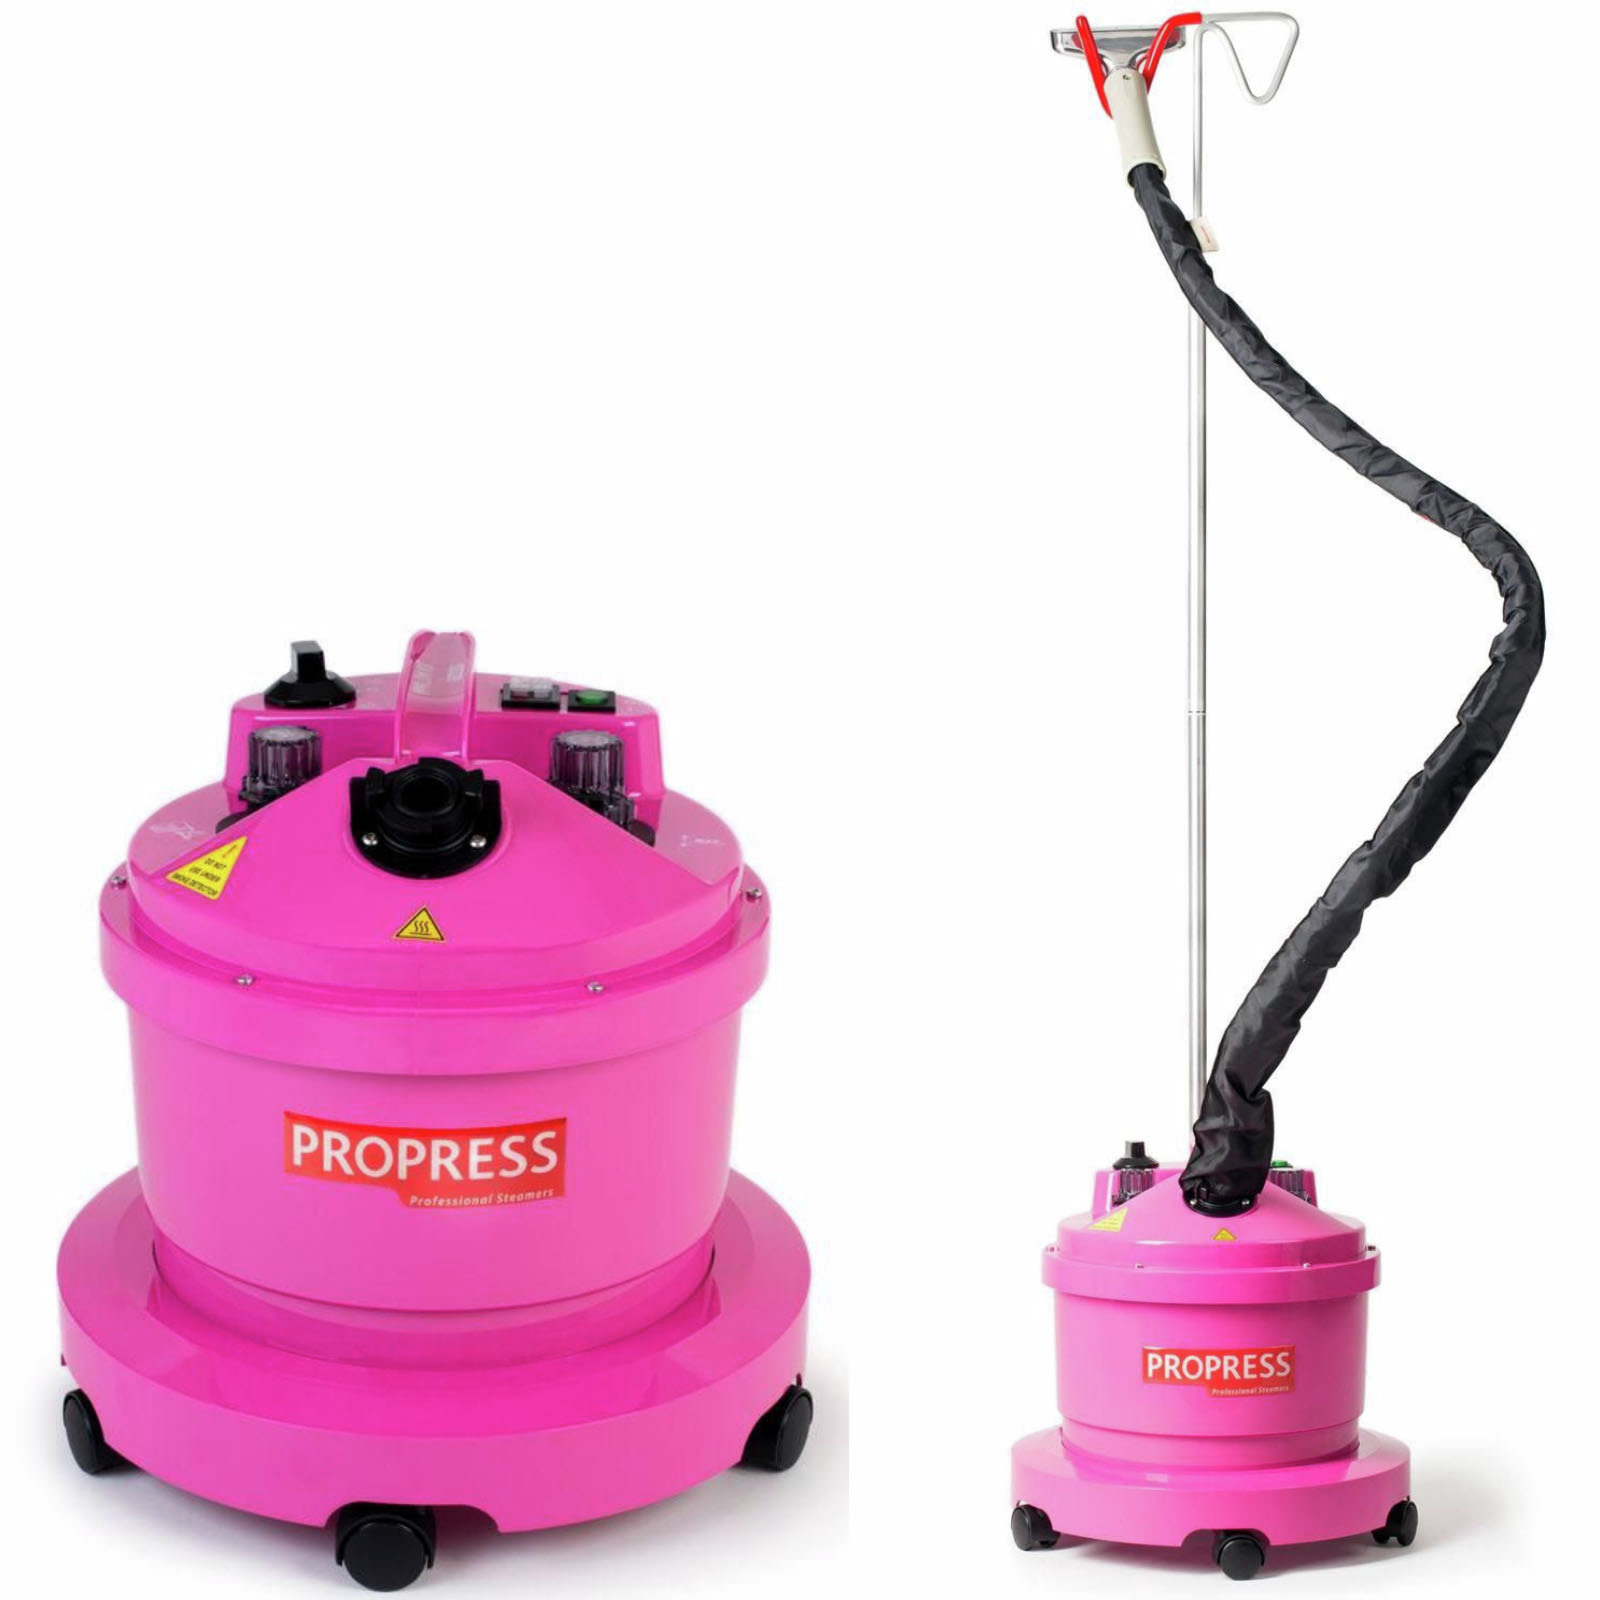 PROPRESS Garment Steamer Iron Clothes Heavy Duty Professional Pro 580 - Pink